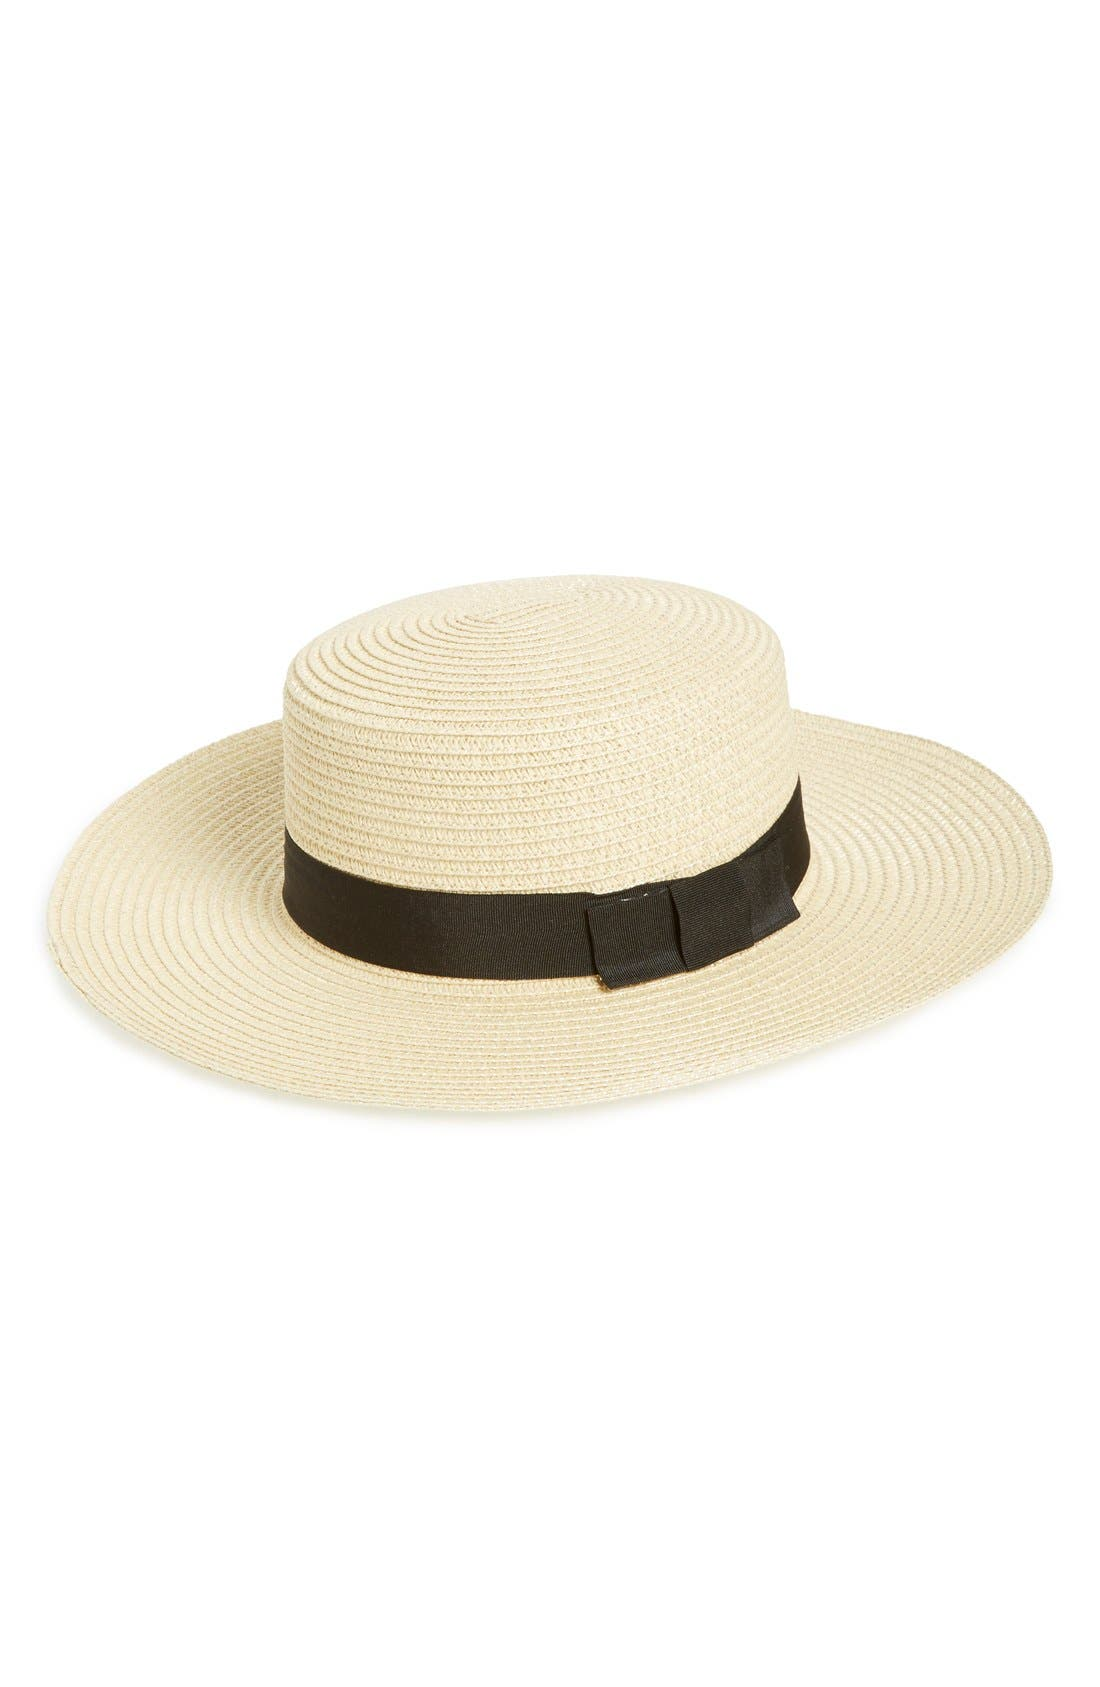 Main Image - BP. Straw Boater Hat